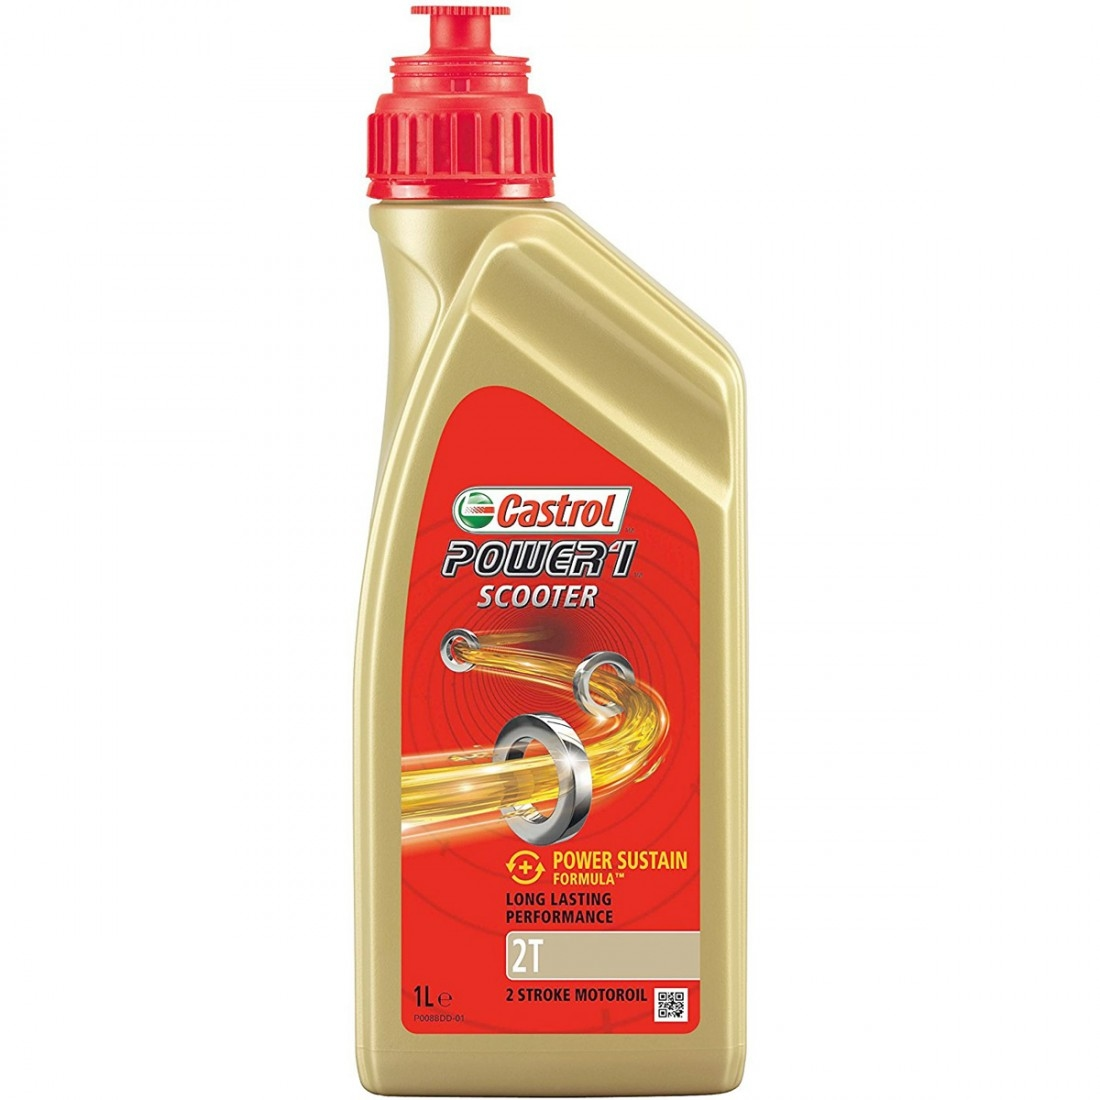 olio e spay castrol power 1 scooter 2t 1l motocard